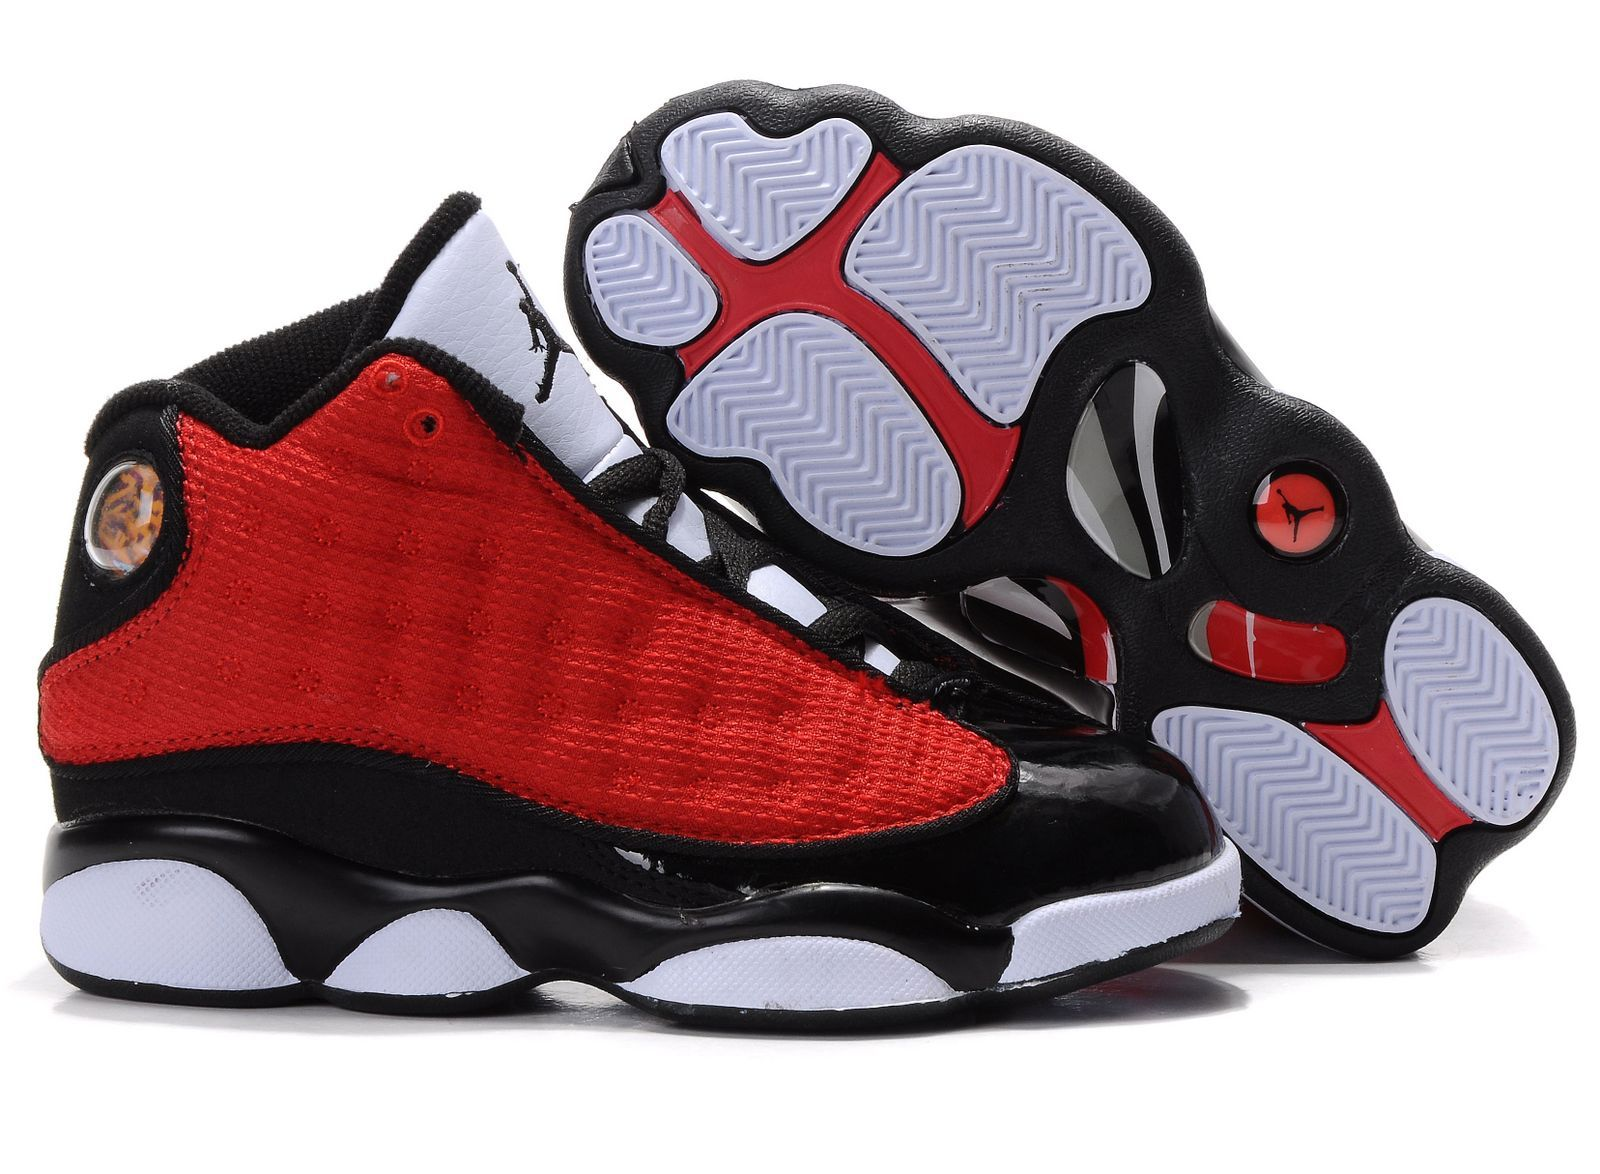 e28b1438137 jordans shoes | ... > Air Jordan For Kids > Air Jordan 6 Rings Kids ...